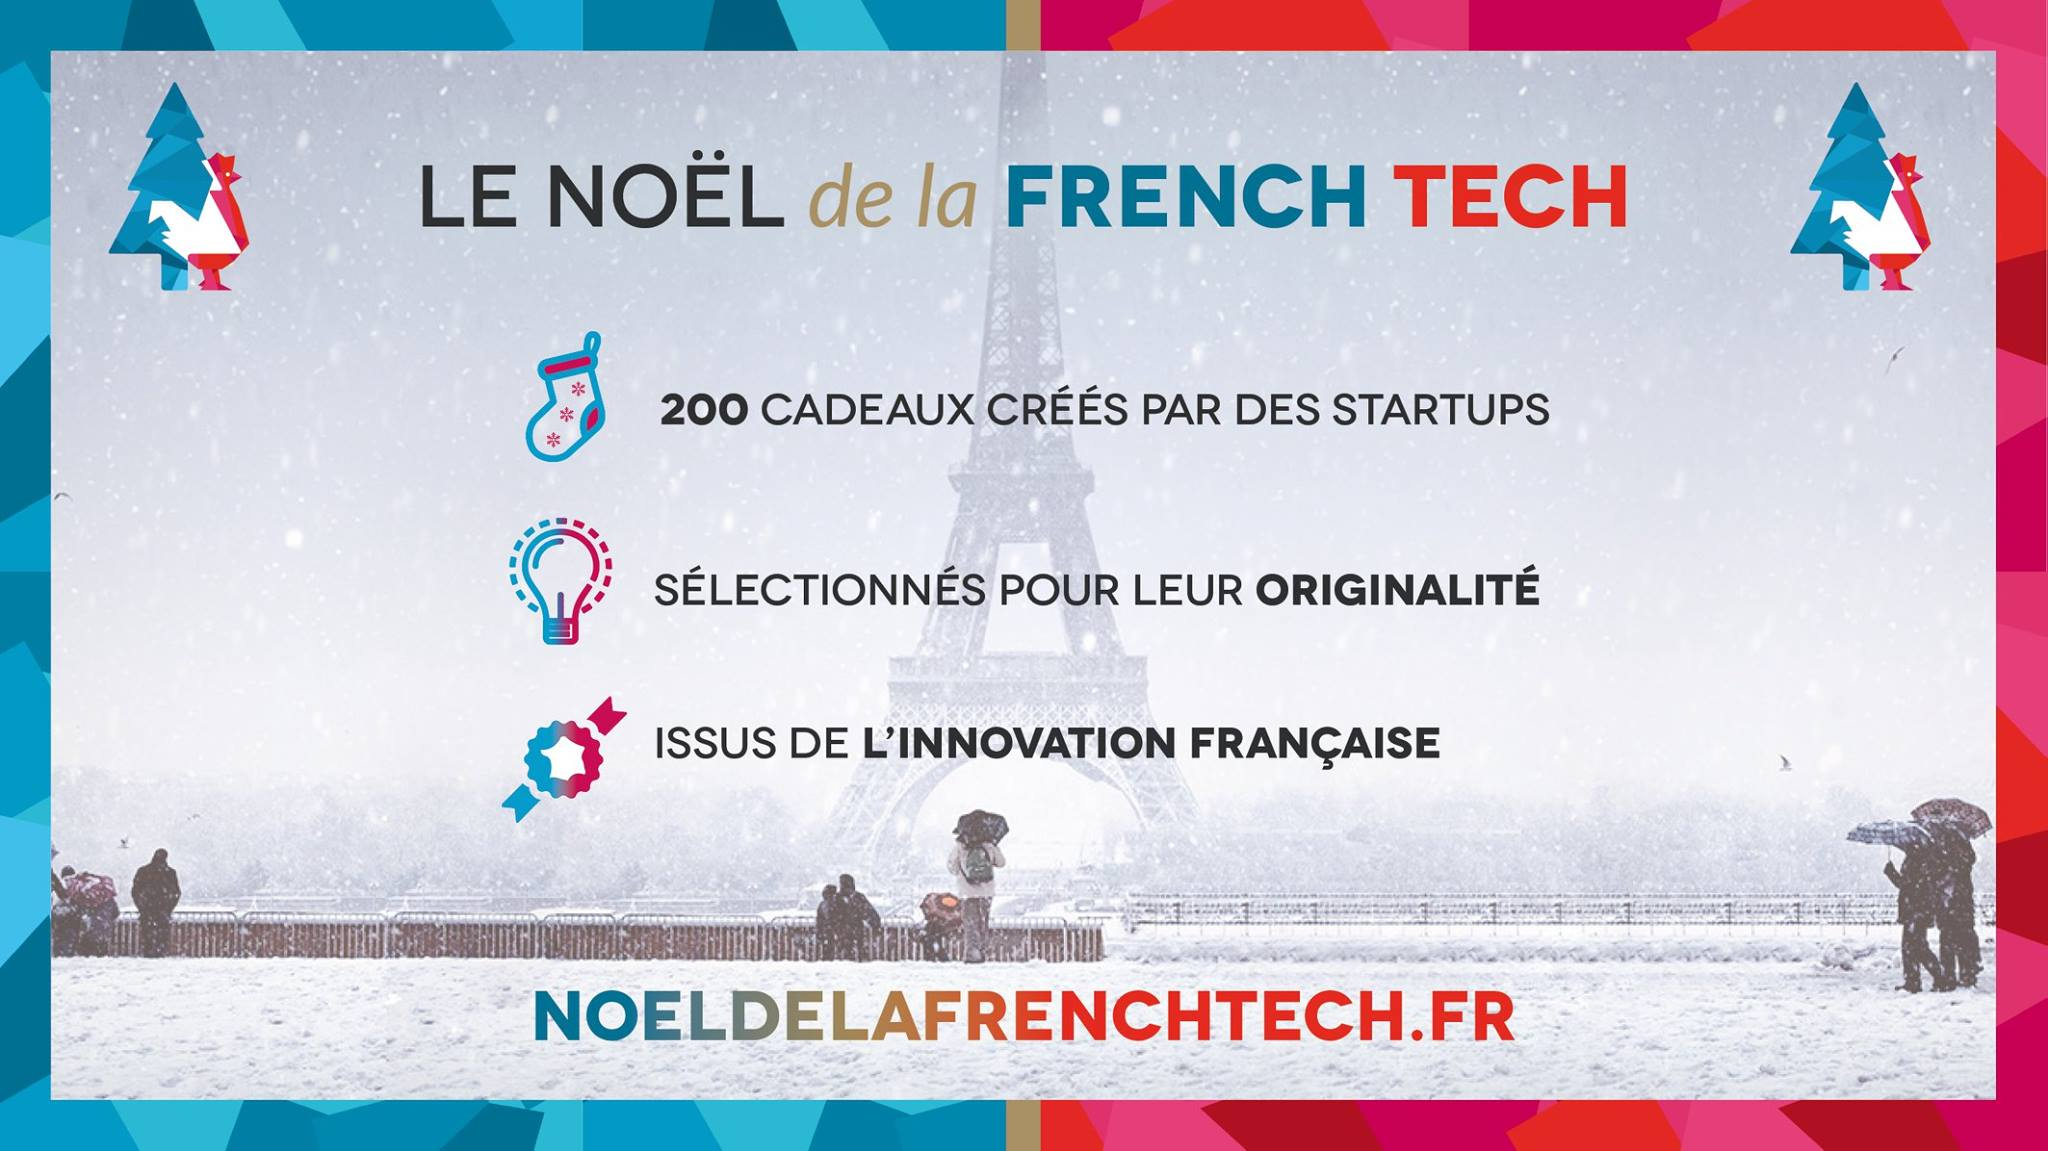 Noel-de-la-French-Tech